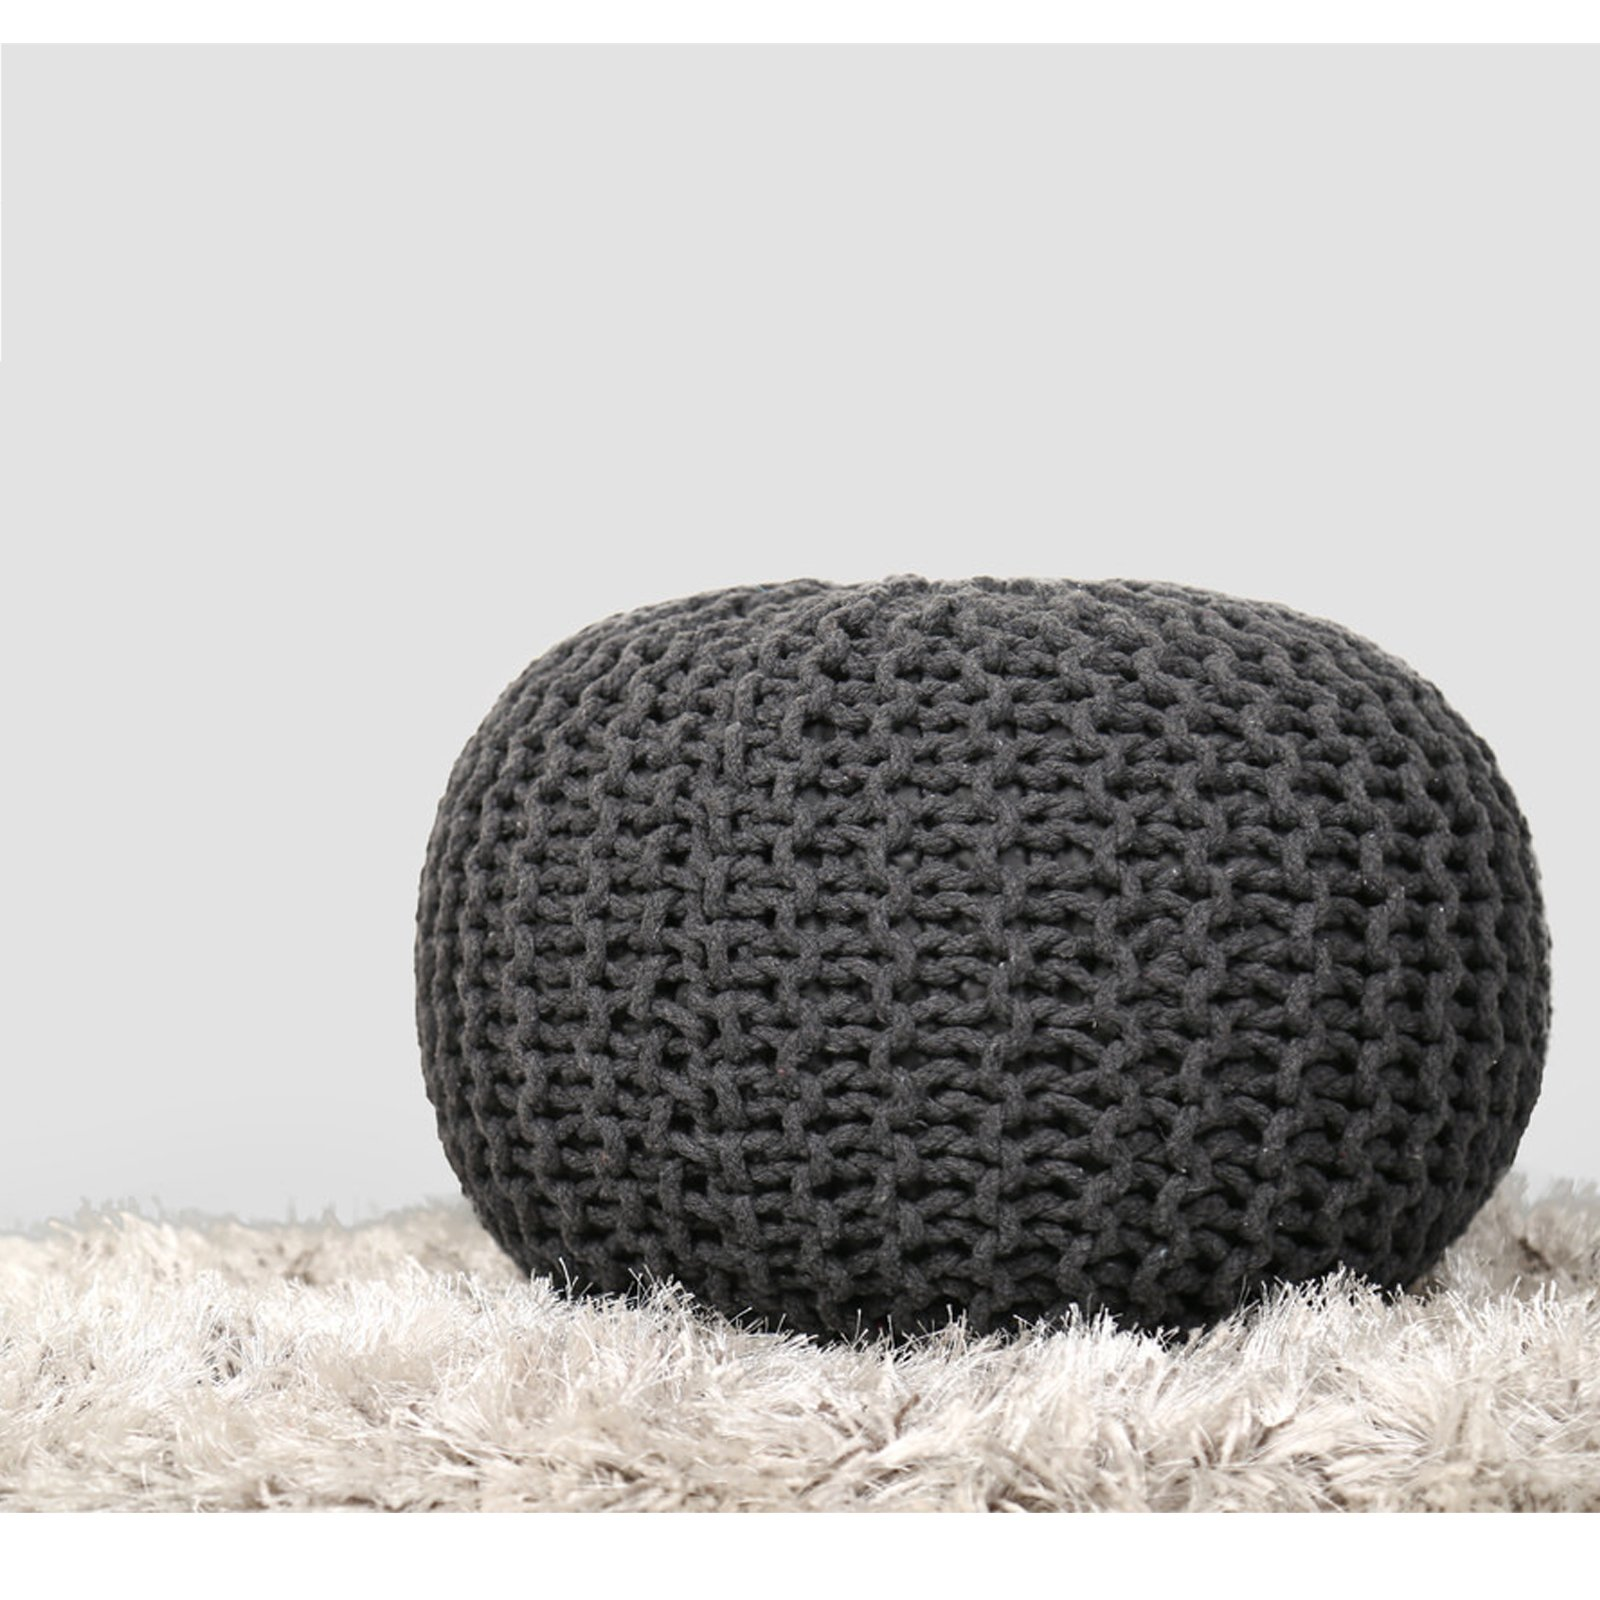 RAJRANG BRINGING RAJASTHAN TO YOU Charcoal Grey Hand Knit Pure Cotton Stuffed Pouf Braid Cord Stitched Round Foot Home Decorative Perfect Patio Seating, D-20 x H-14 inch, by RAJRANG BRINGING RAJASTHAN TO YOU